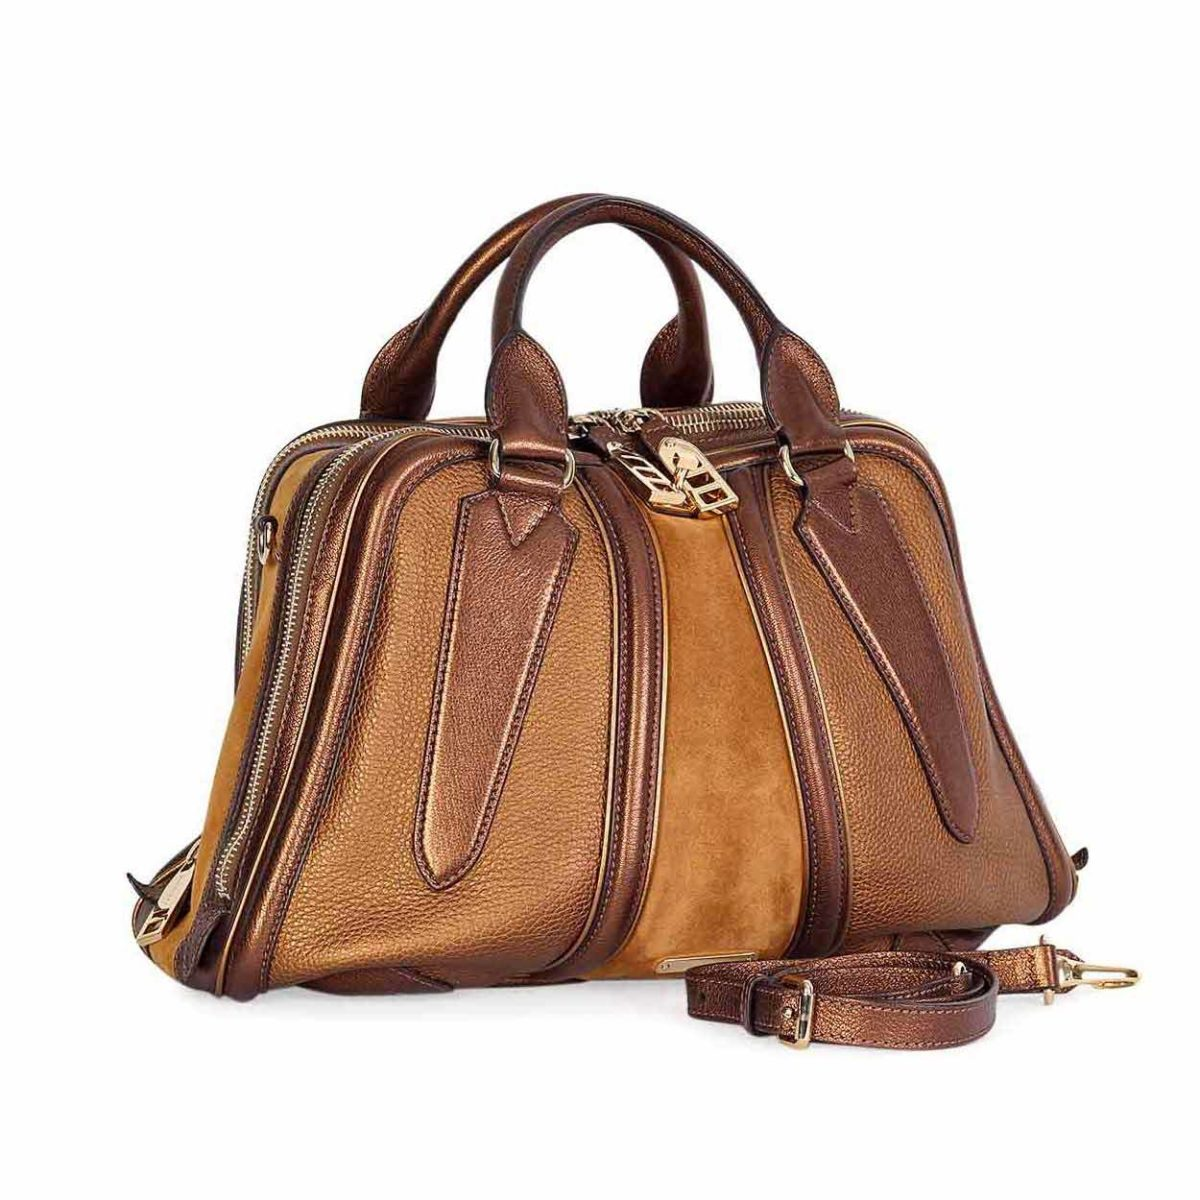 BURBERRY Metallic Leather   Suede Bowling bag  0369b9403348f